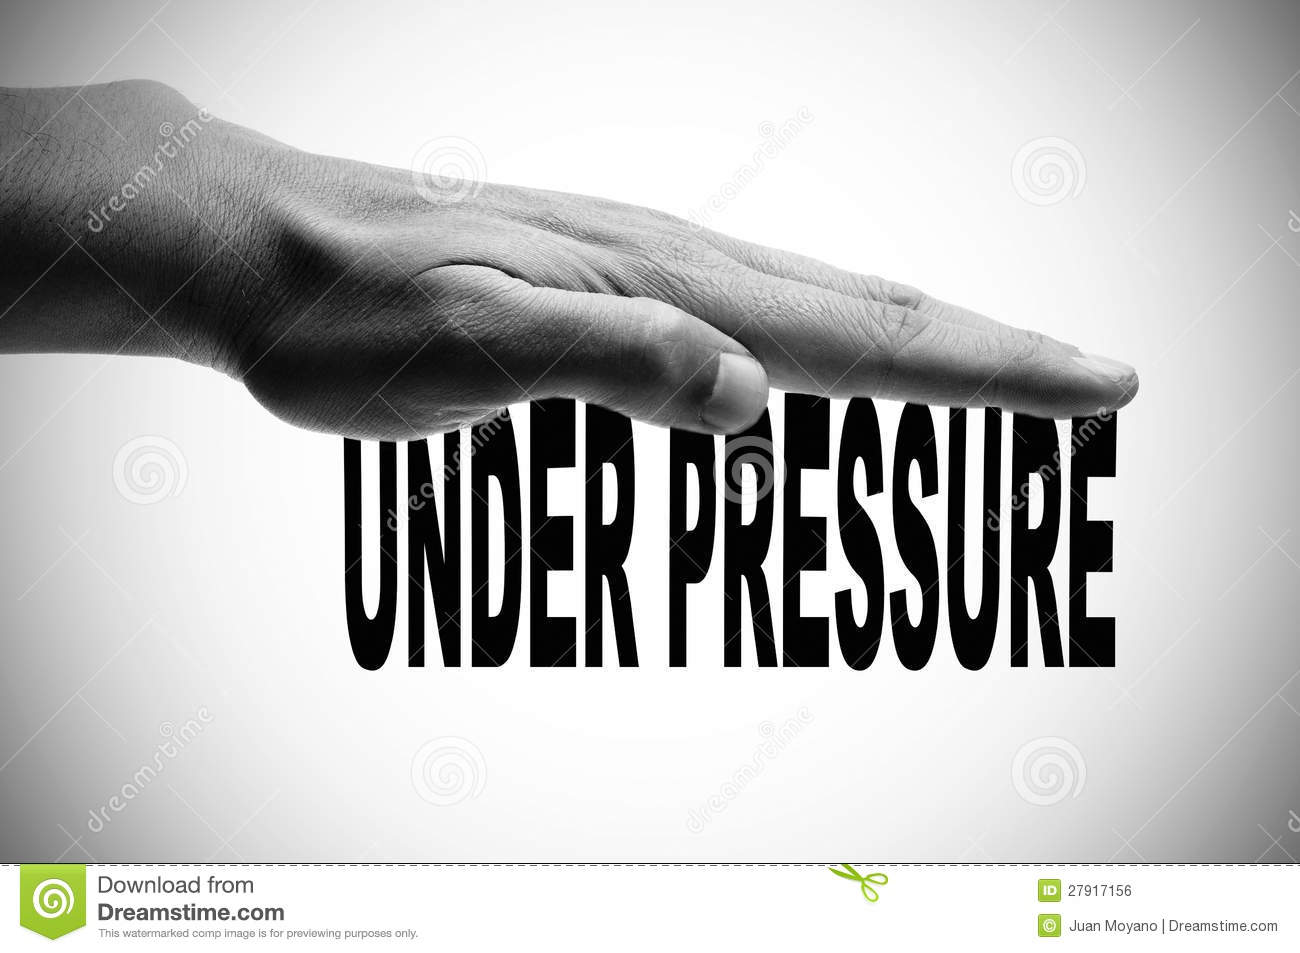 Under Pressure Royalty Free Stock Image - Image: 27917156